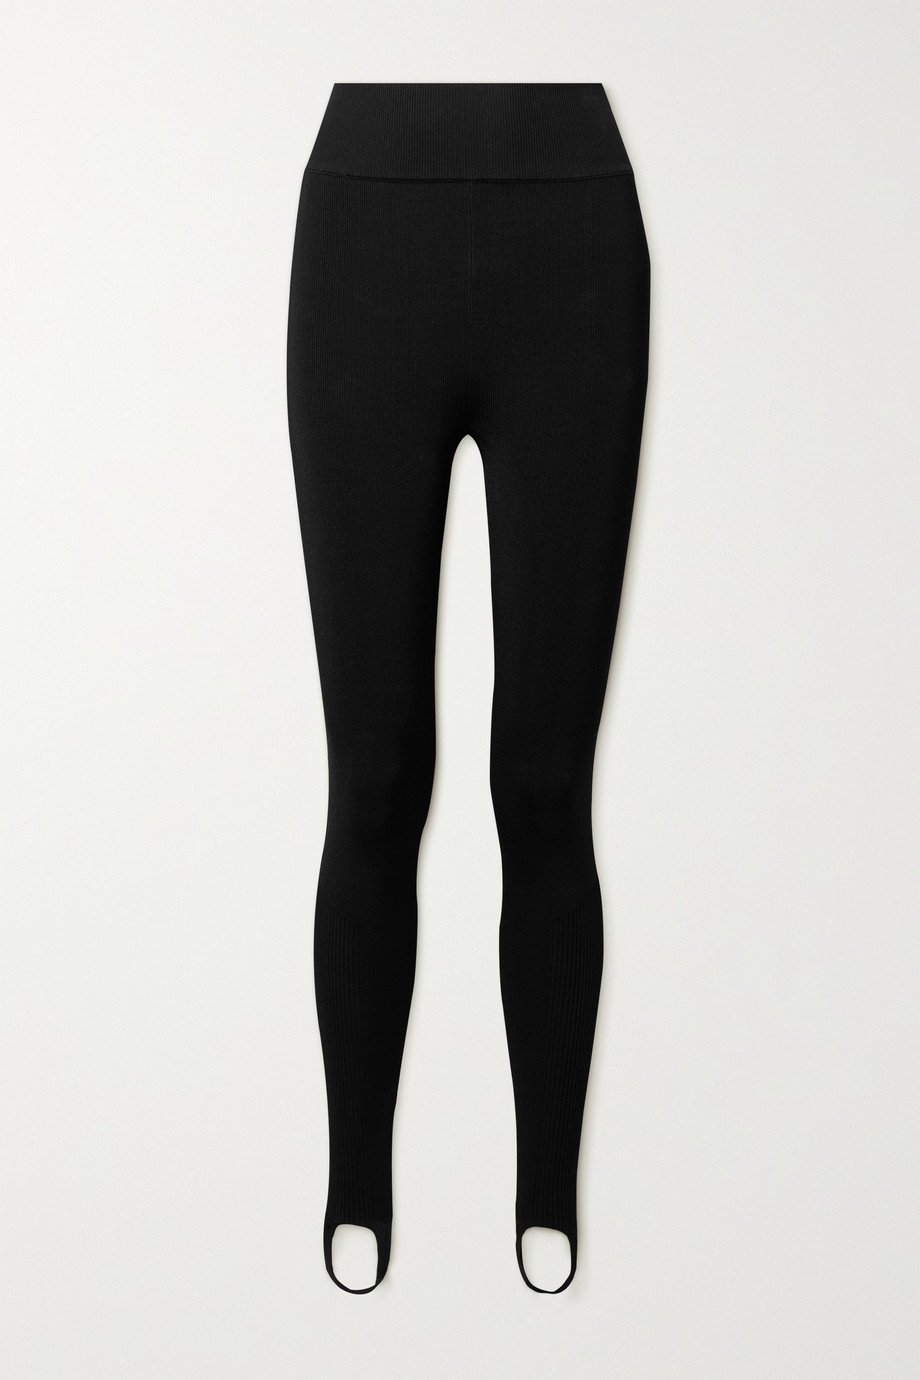 Victoria Beckham Leggings aus Stretch-Strick mit Steg